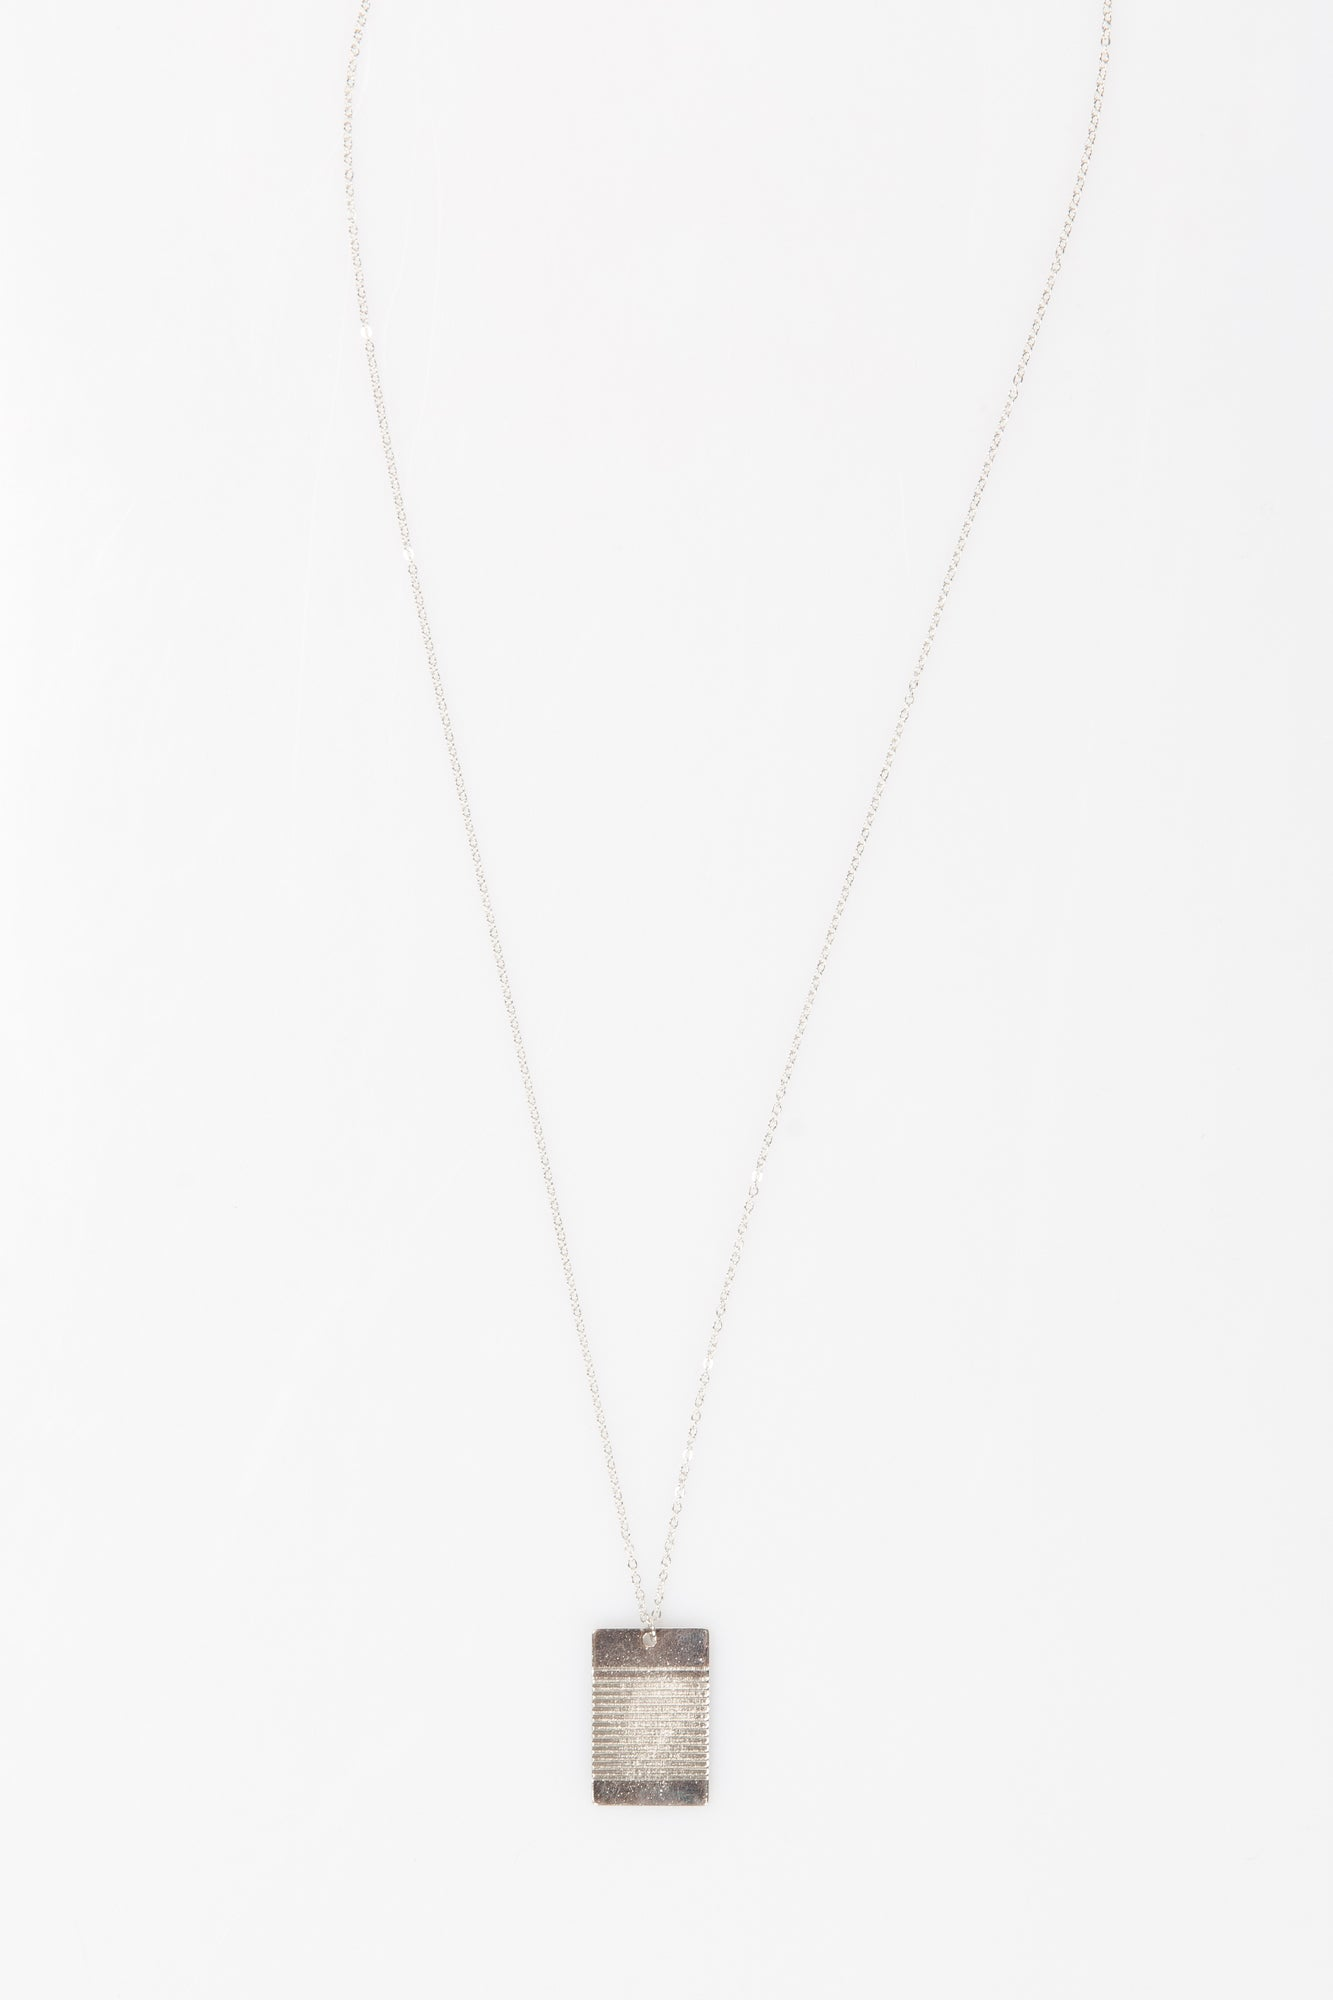 Nth Tag Necklace Silver